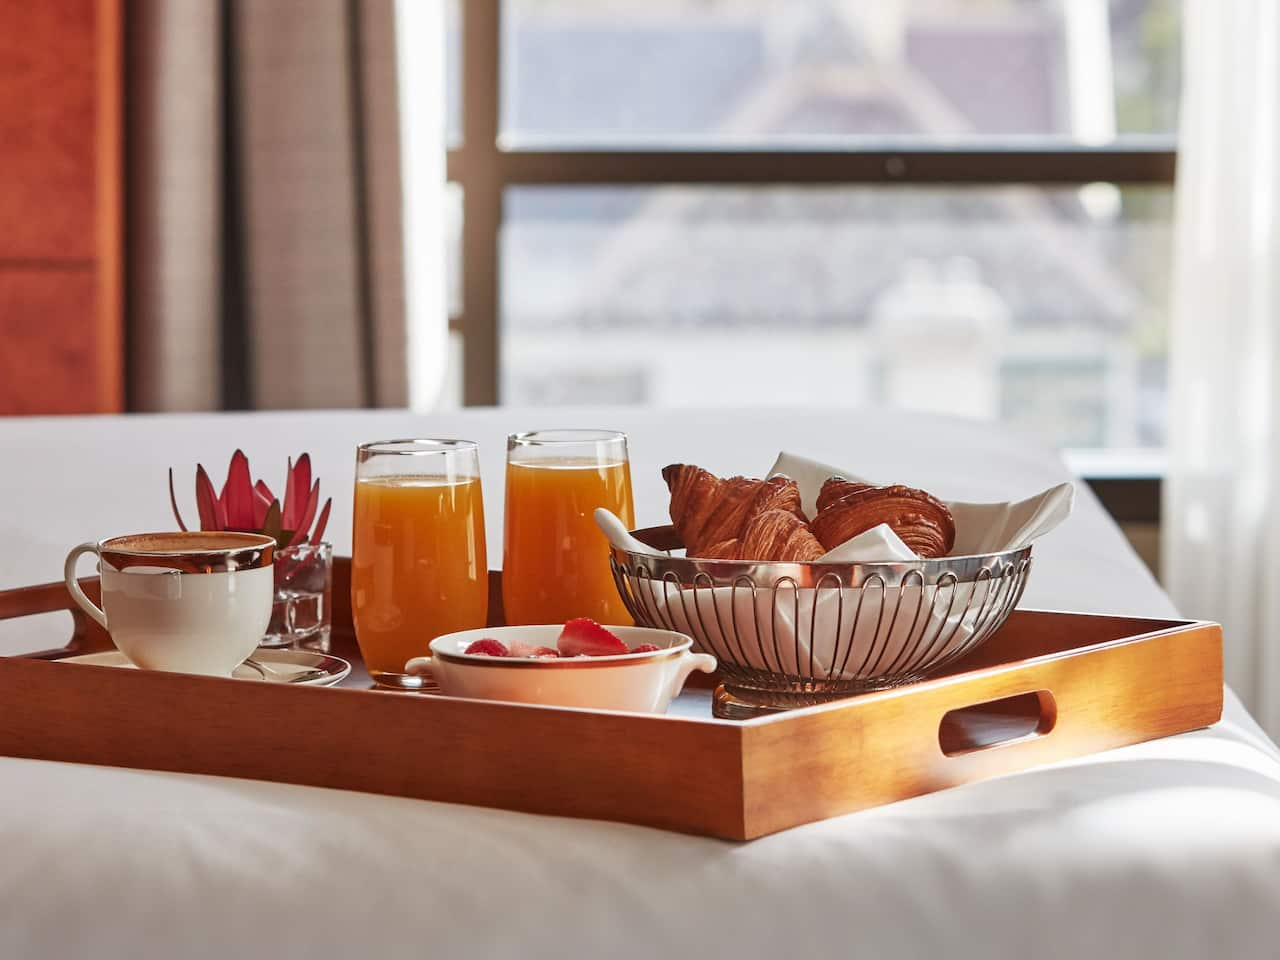 Spa Deluxe Breakfast in Bed